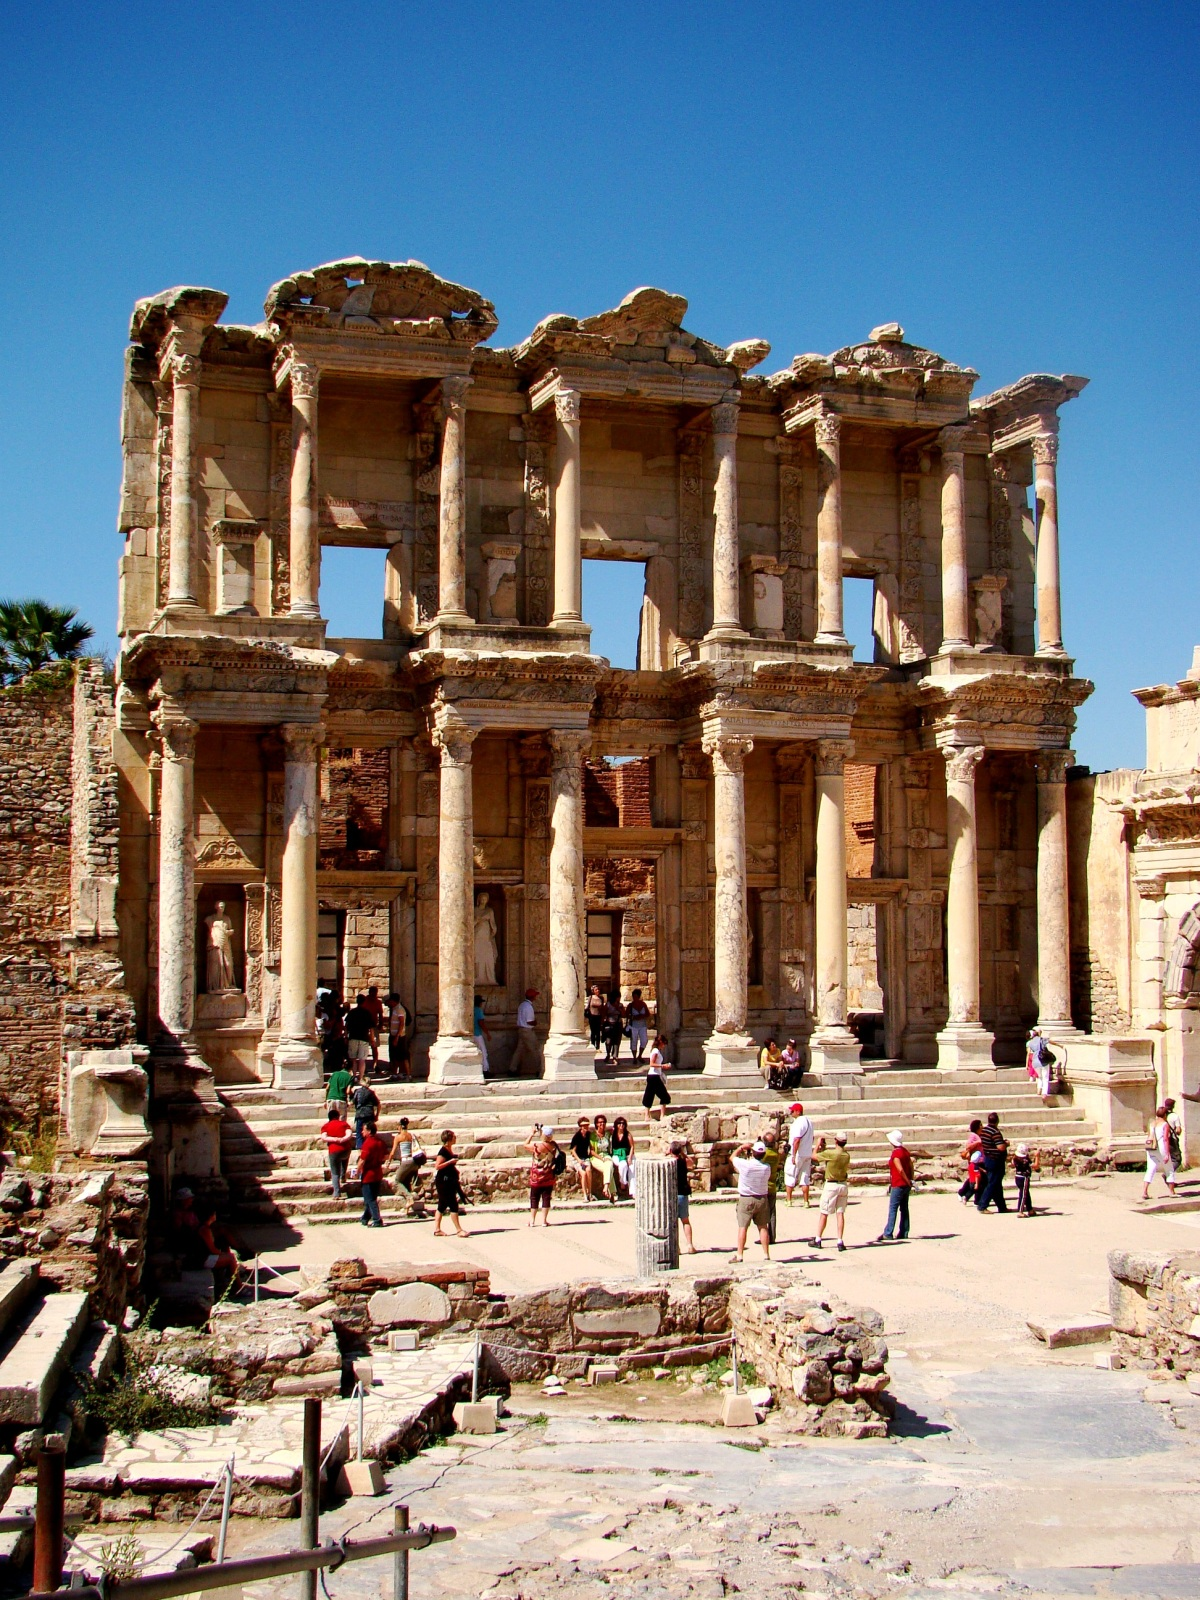 The Library of Celsus inEphesus